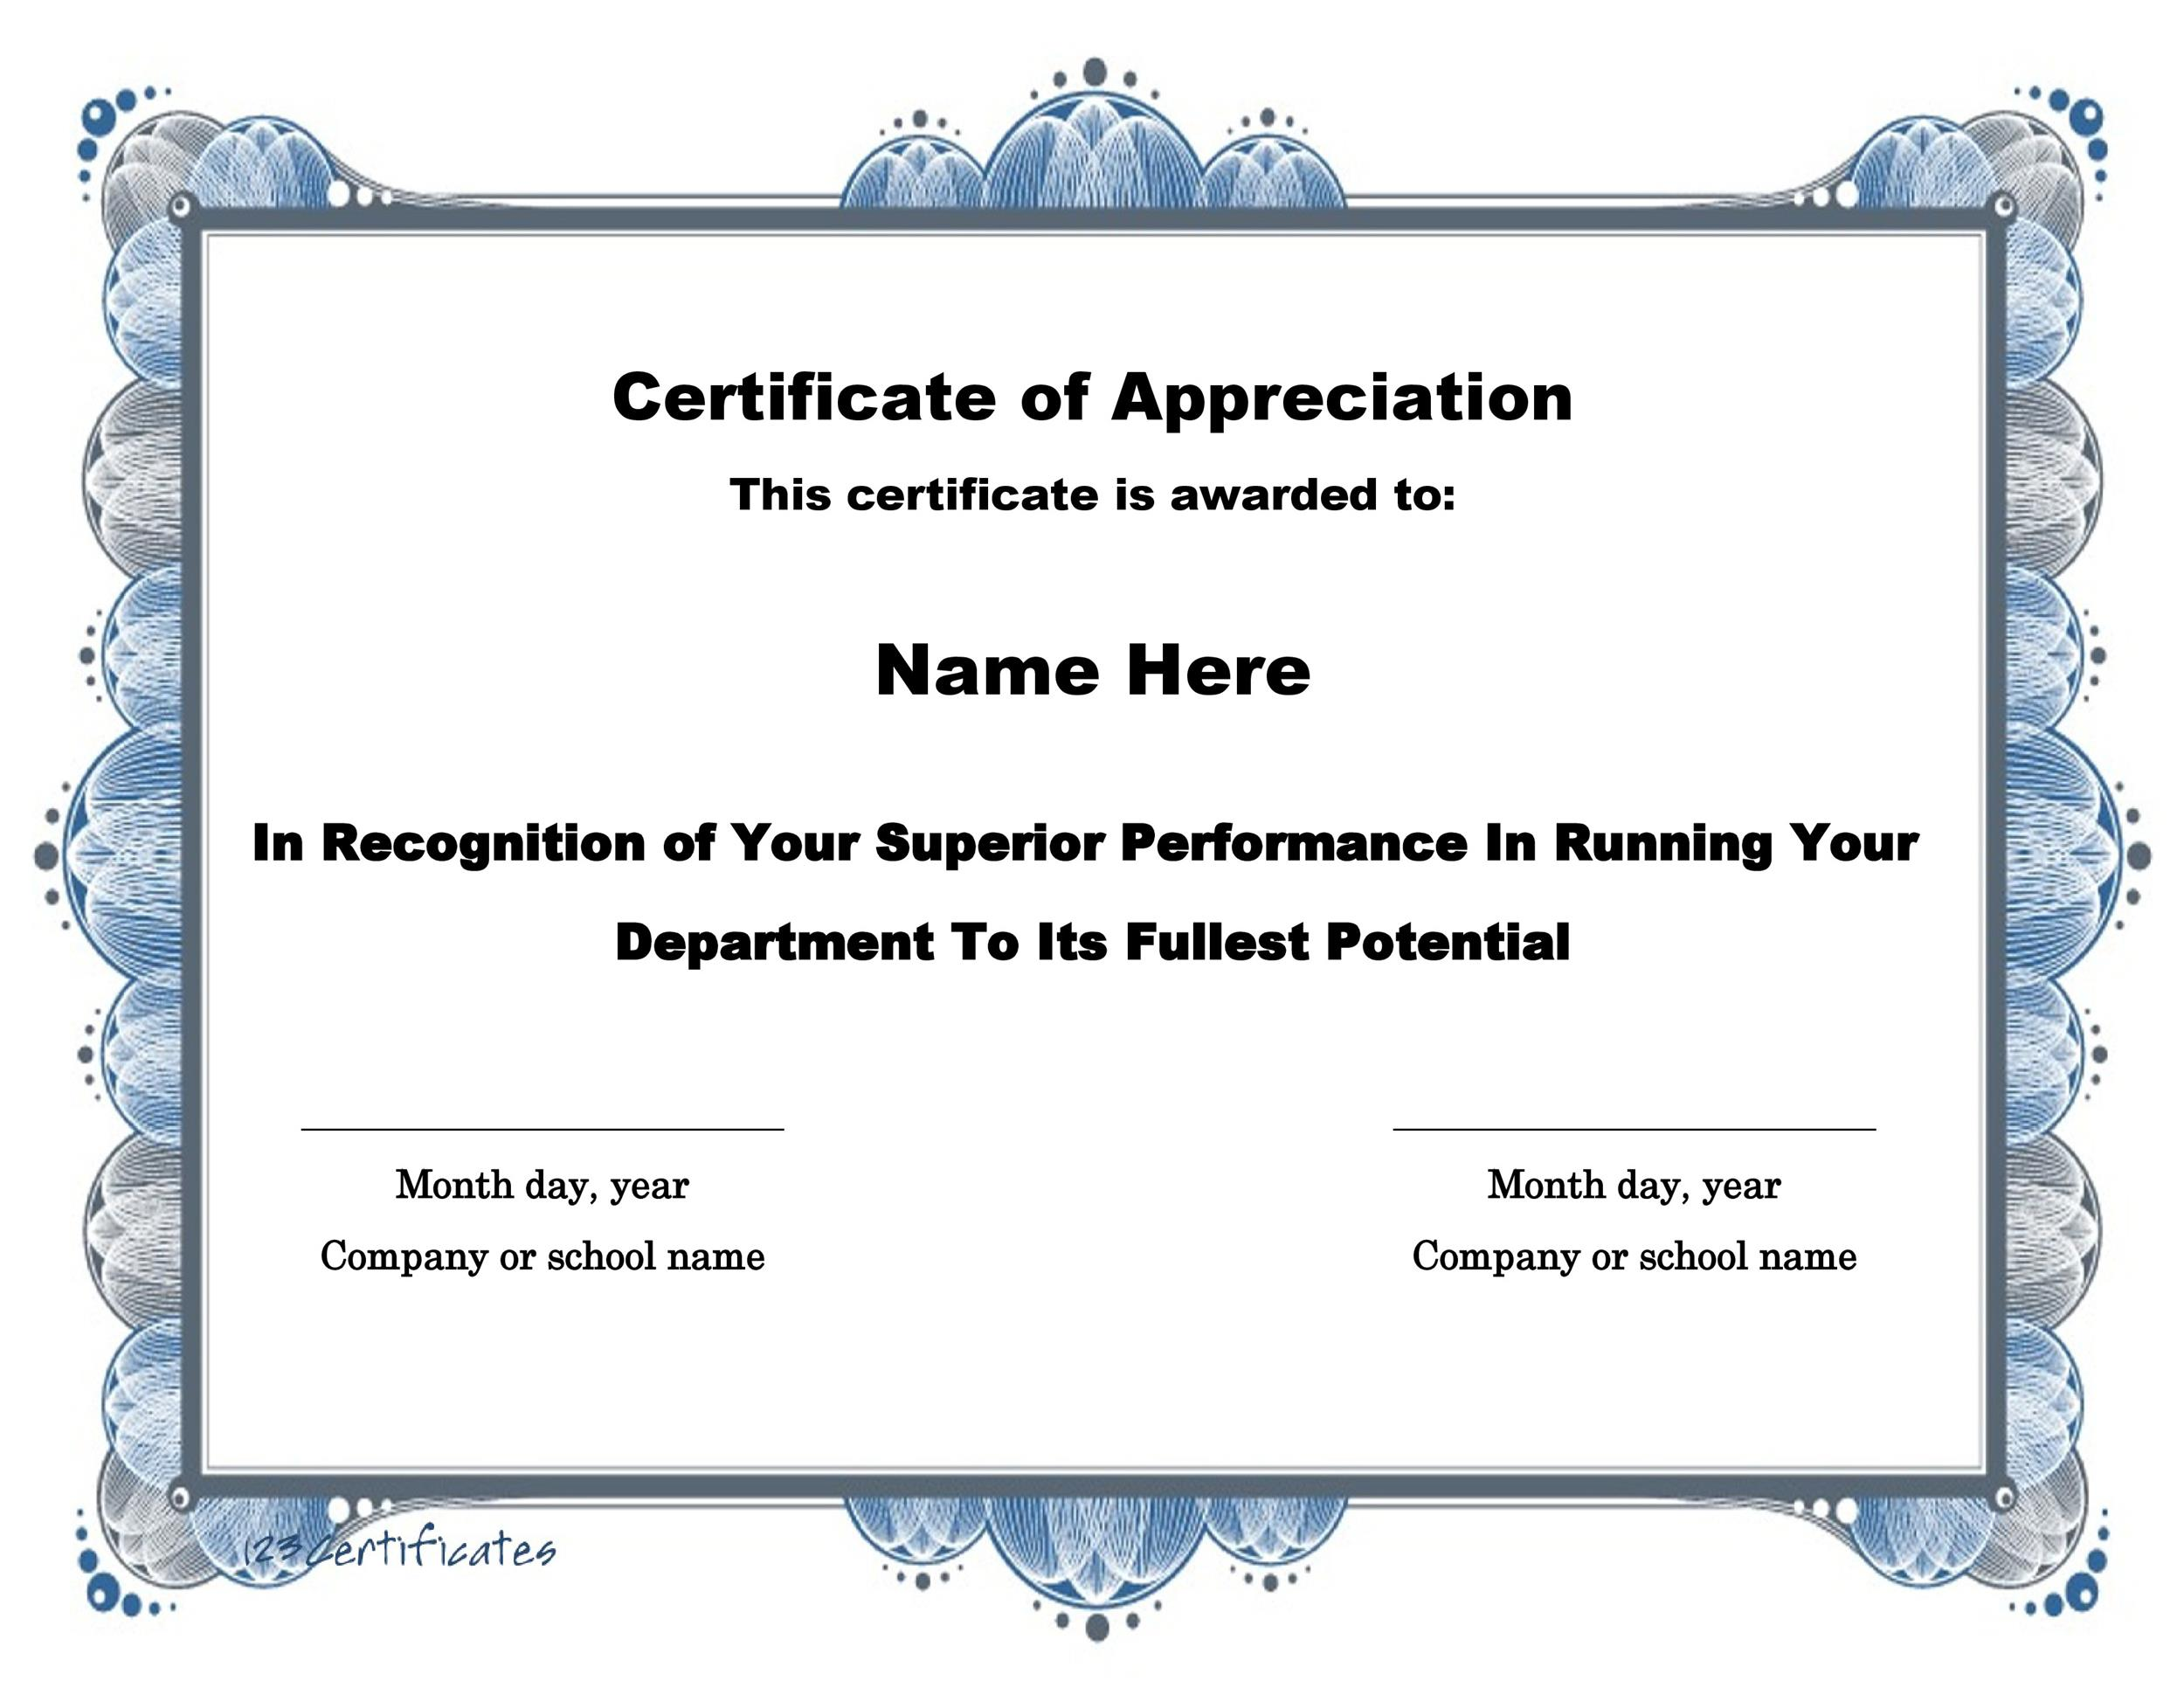 30 Free Certificate of Appreciation Templates and Letters - sample school certificate